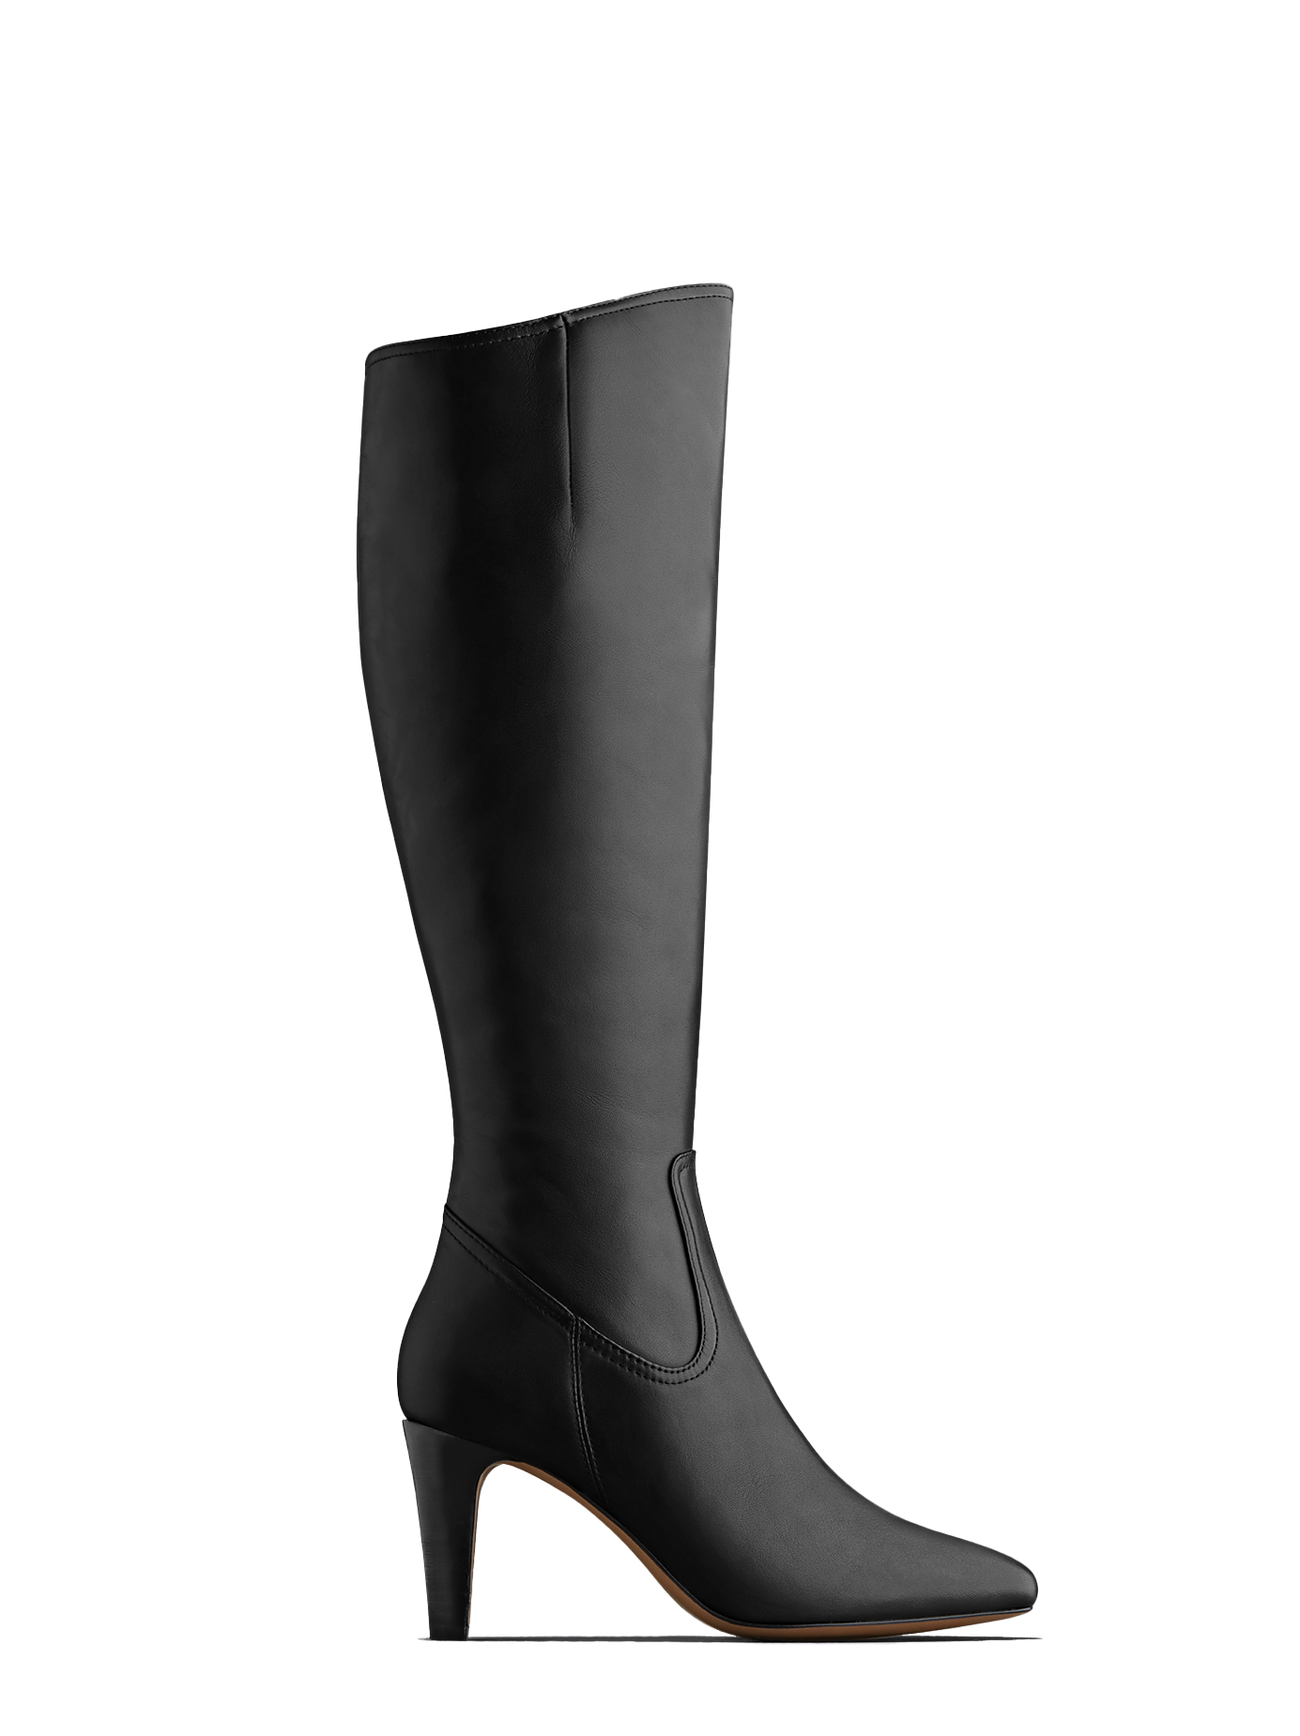 Luxor, a versatile and timeless high heeled black leather boot.